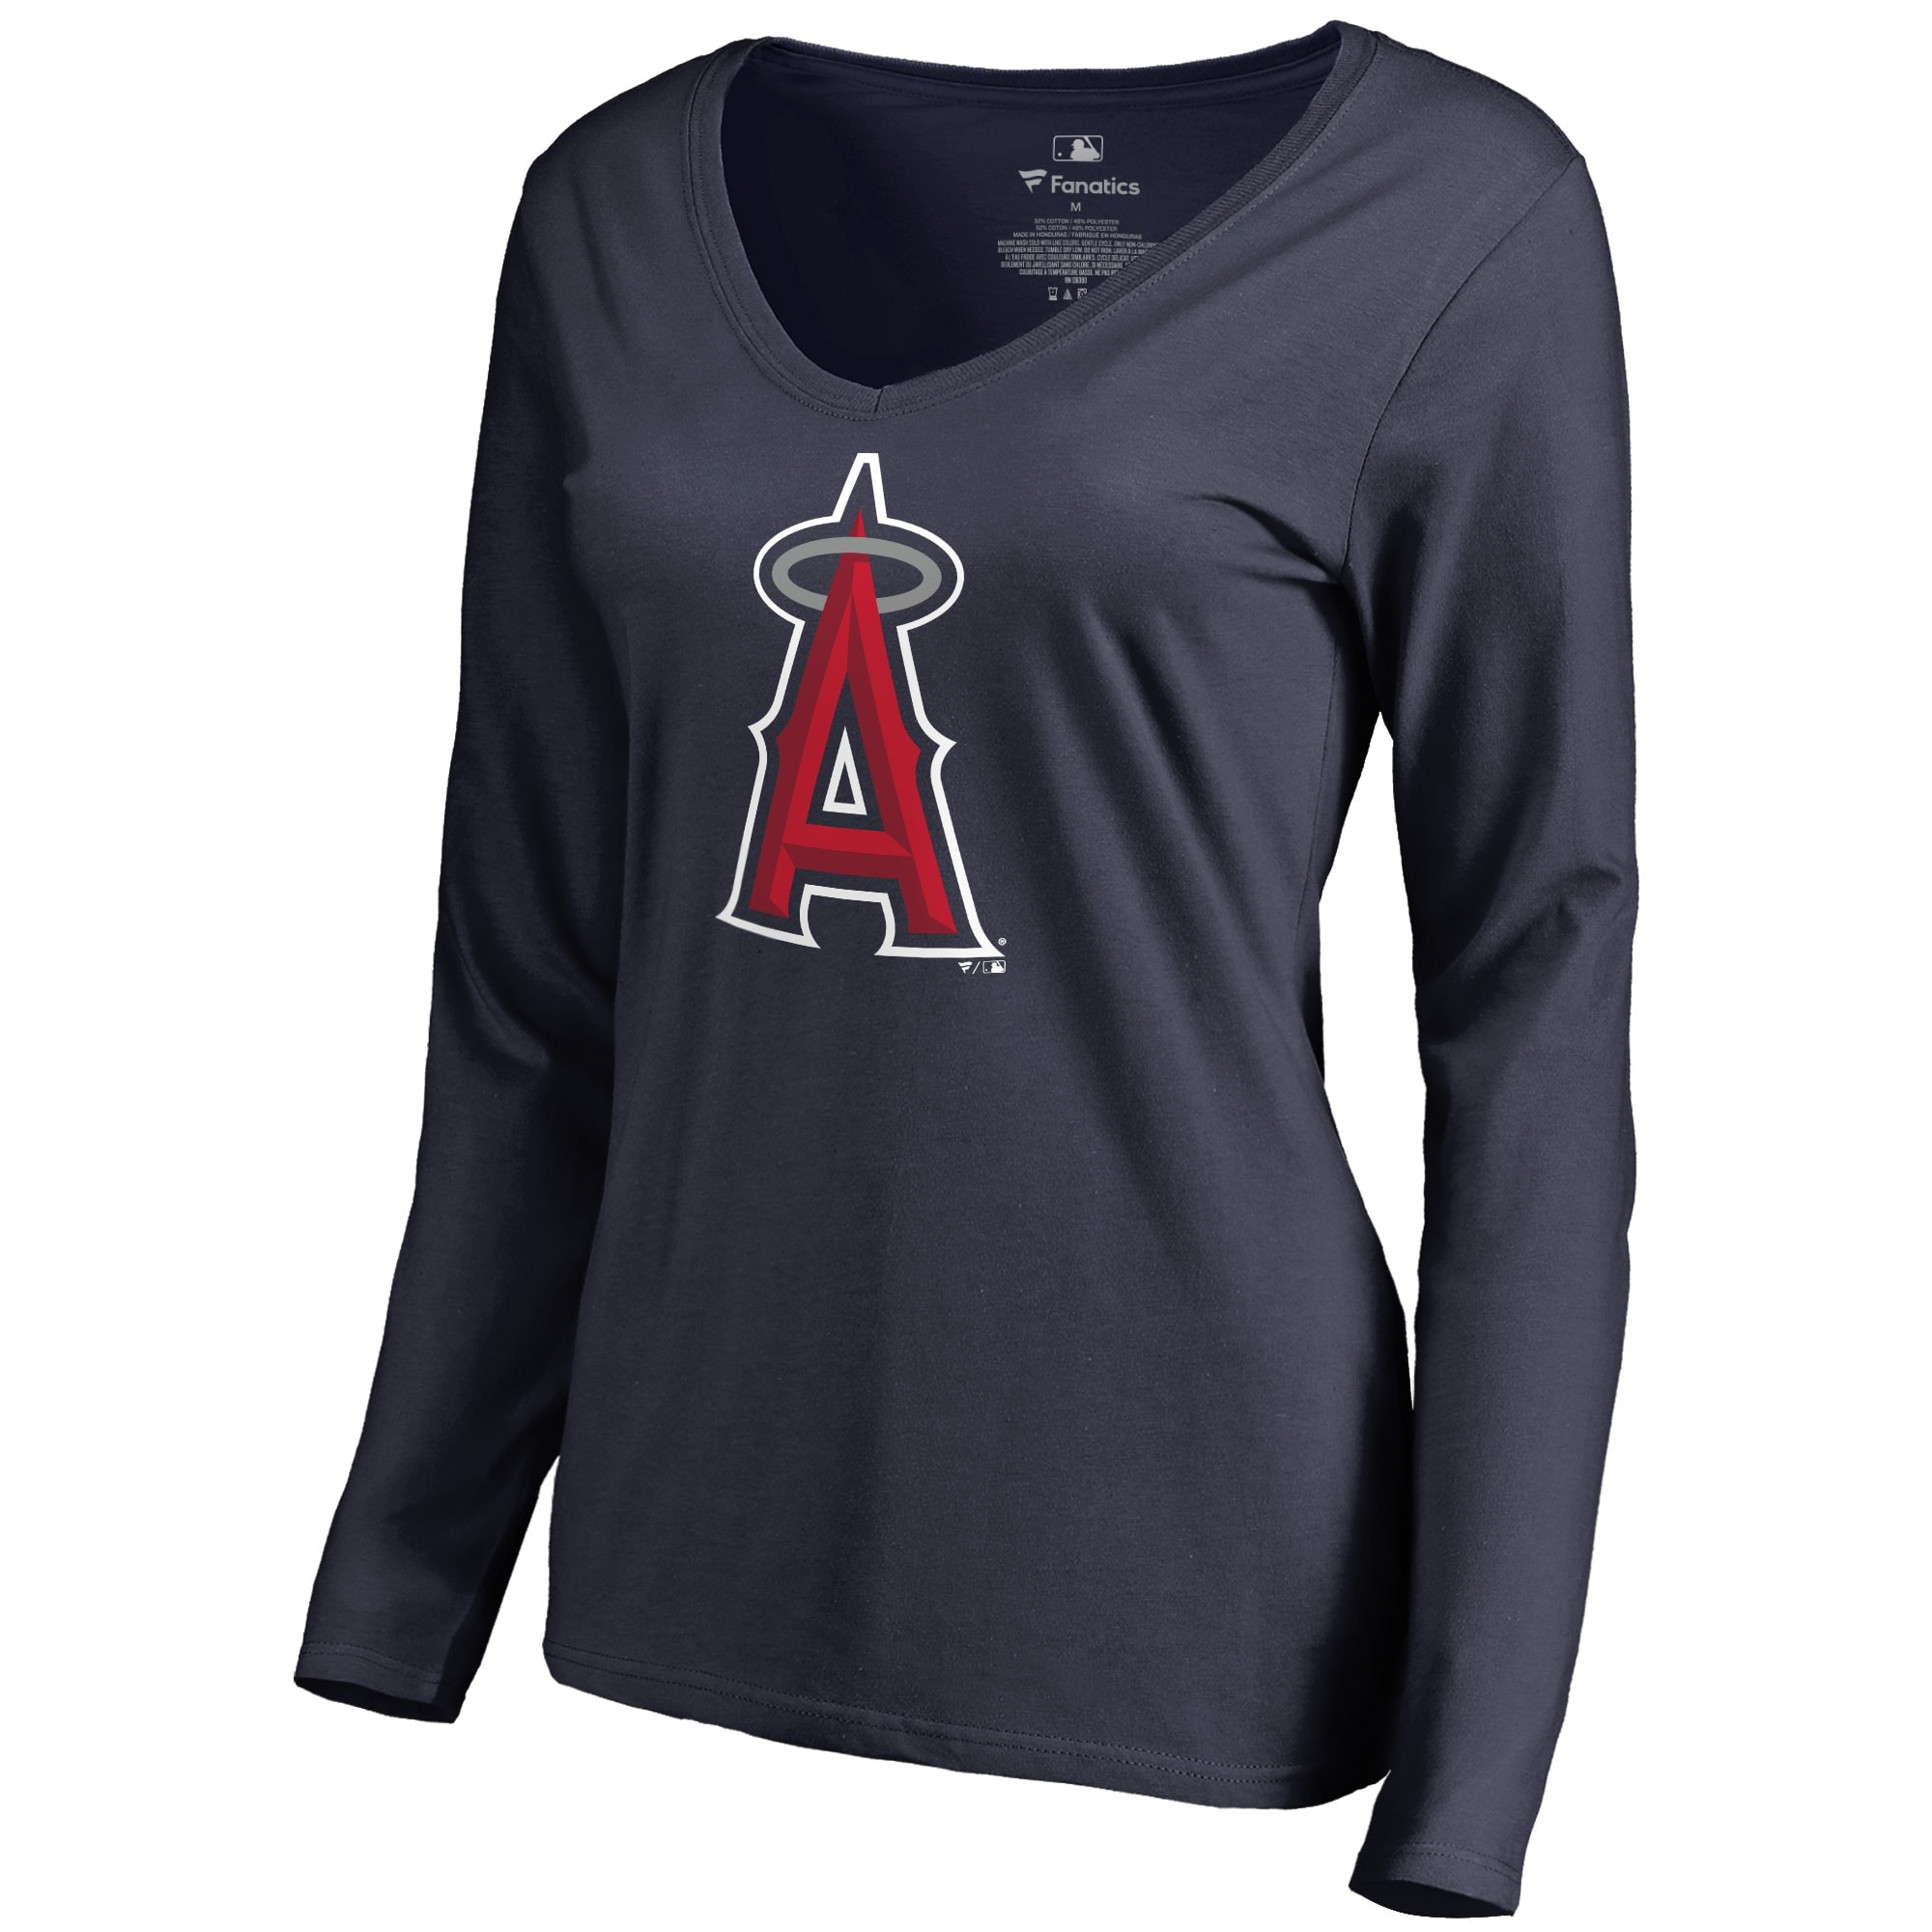 Los Angeles Angels Women's Secondary Color Primary Logo Long Sleeve T-Shirt - Navy